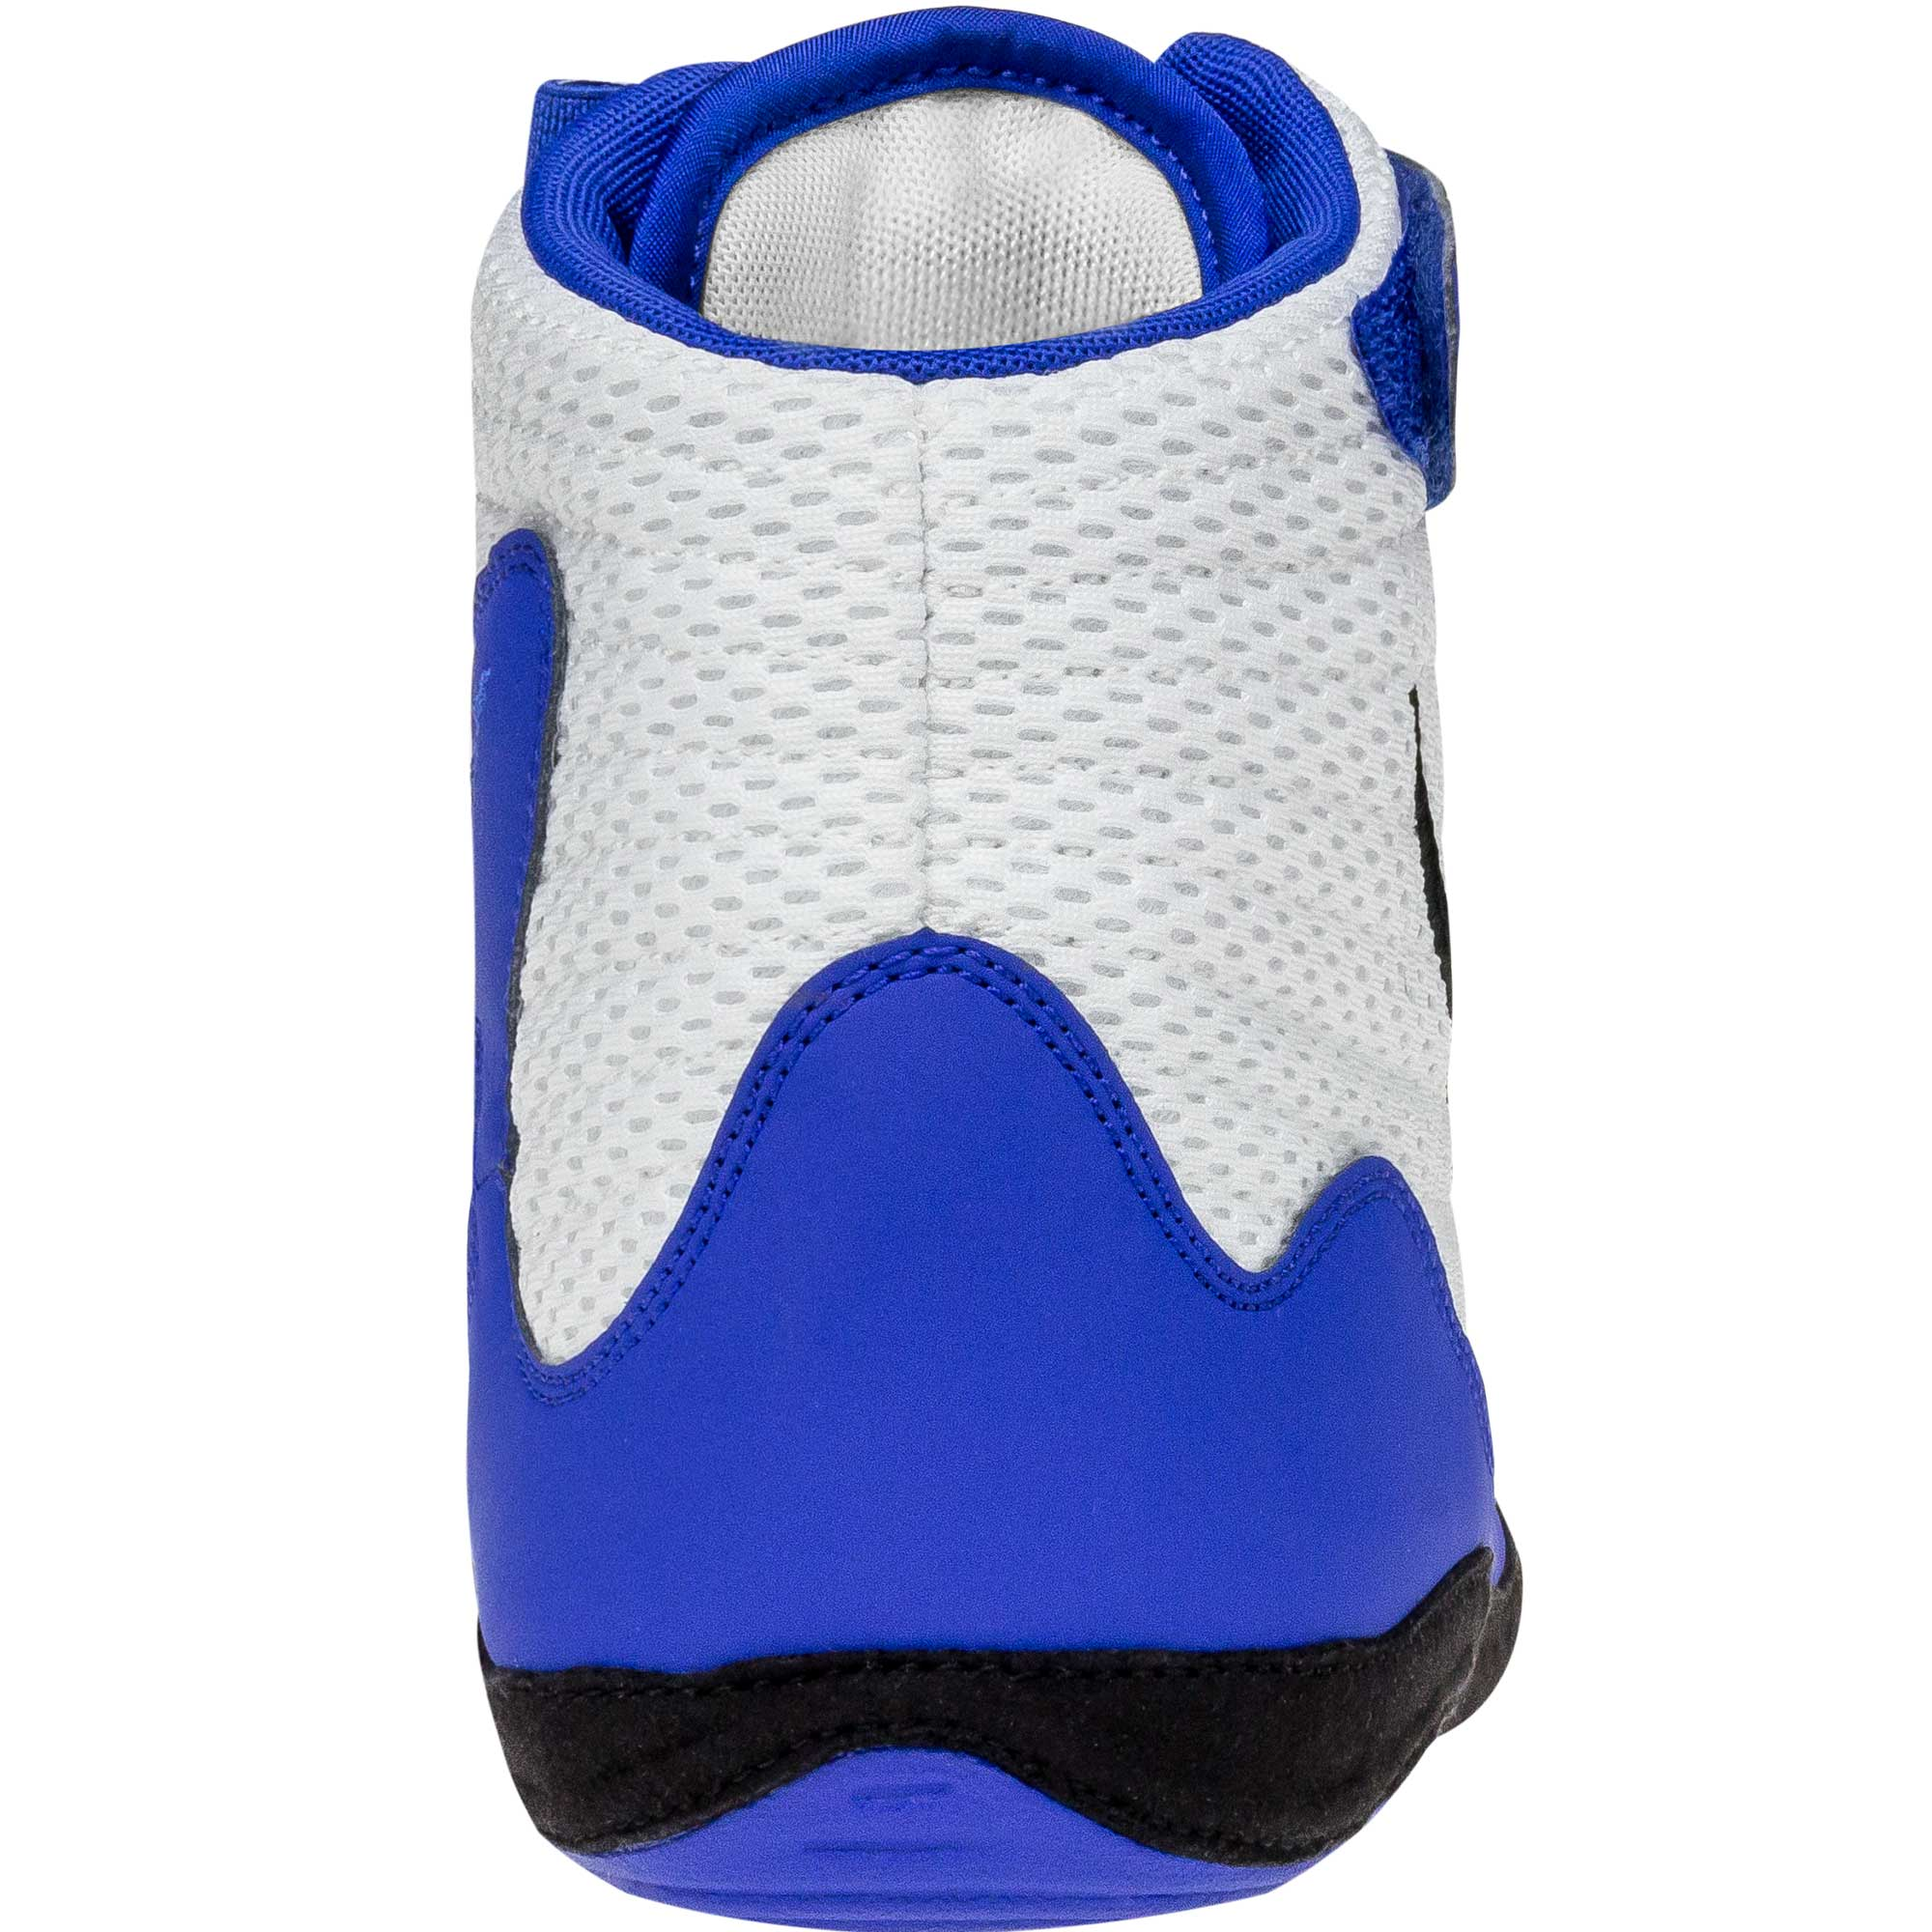 new product 1041f 9573f ... frontNike Inflict 3 White Royal Blue Black ...